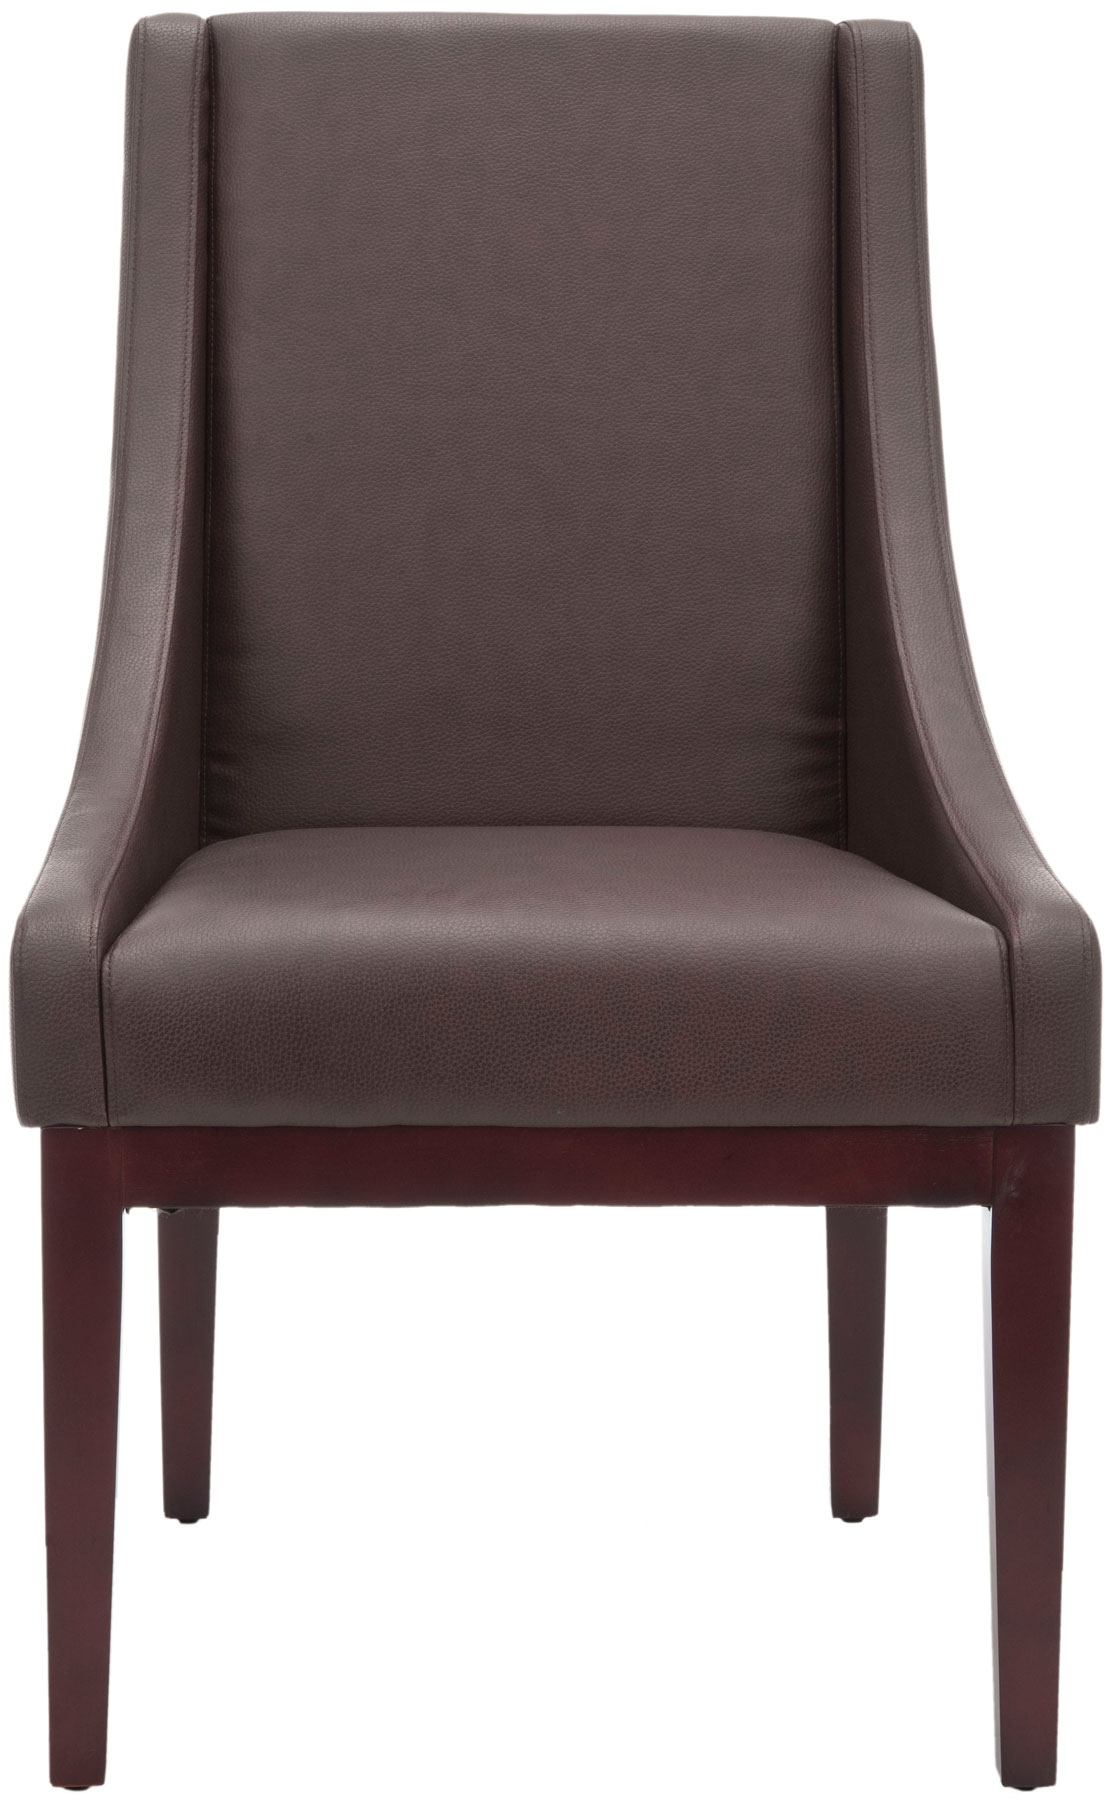 safavieh dining chairs chair legs lowes mcr4500c furniture by